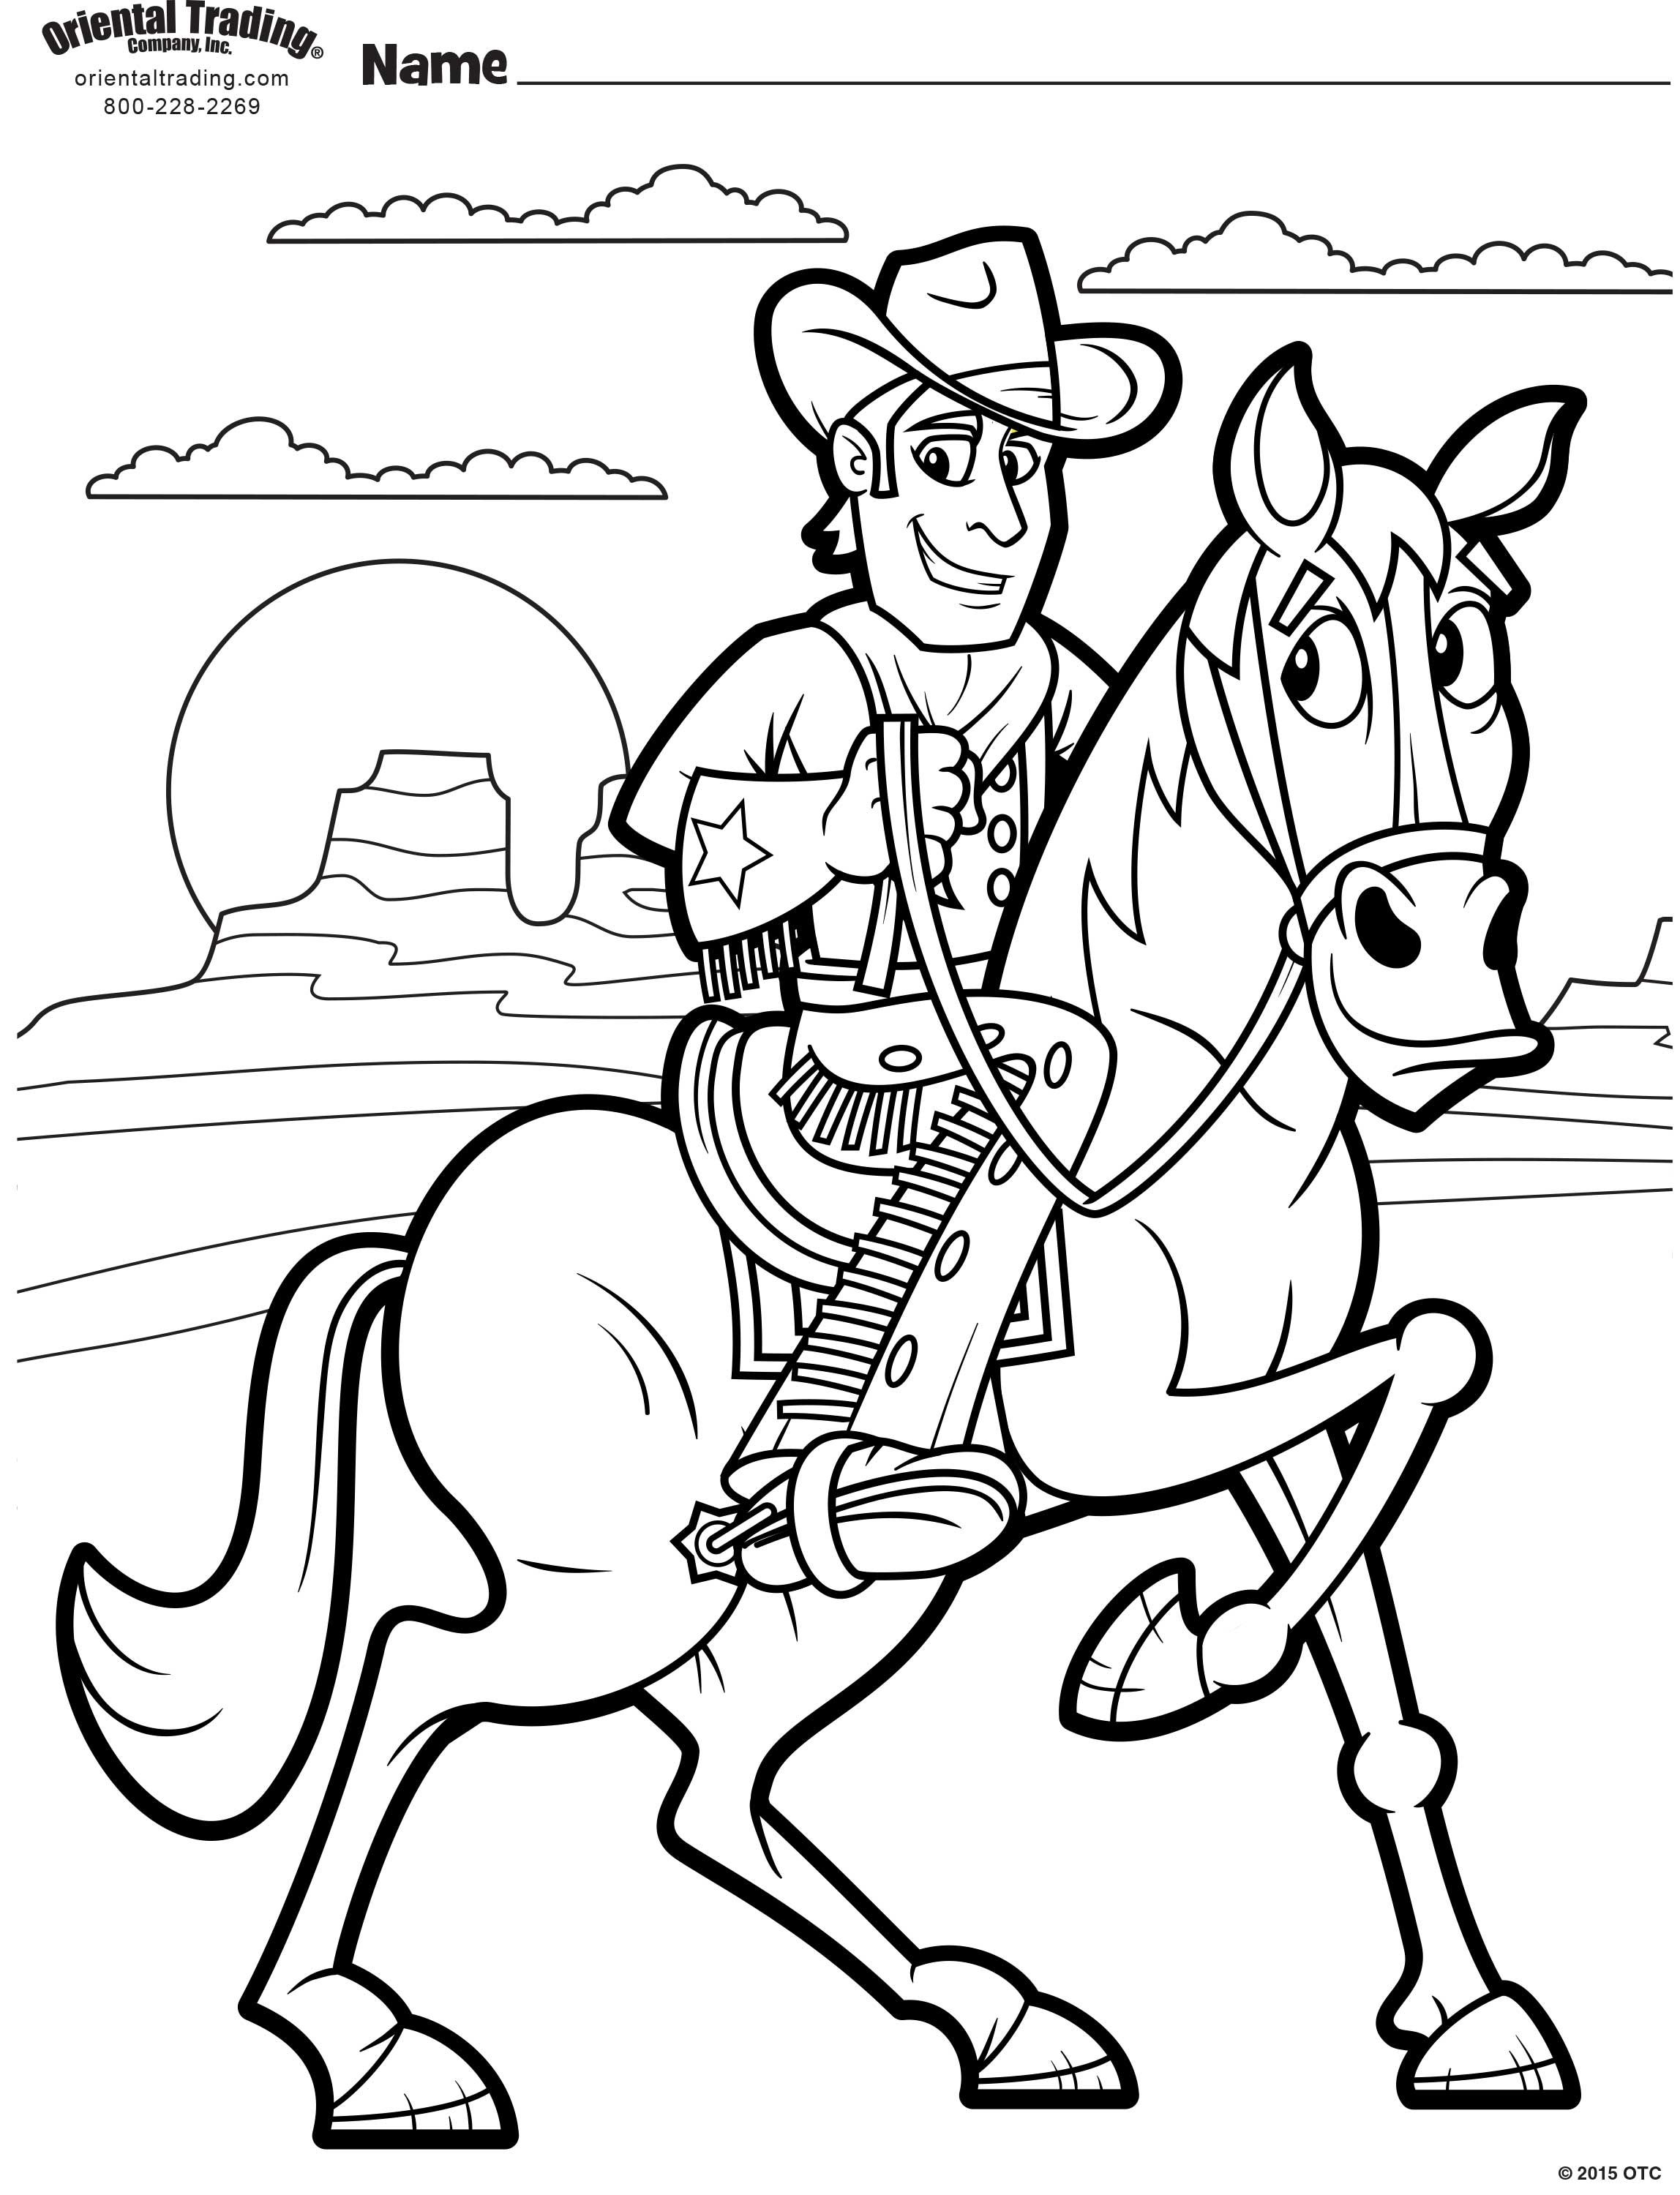 Cowboy Coloring Page | Vbs themes, Coloring pages ...